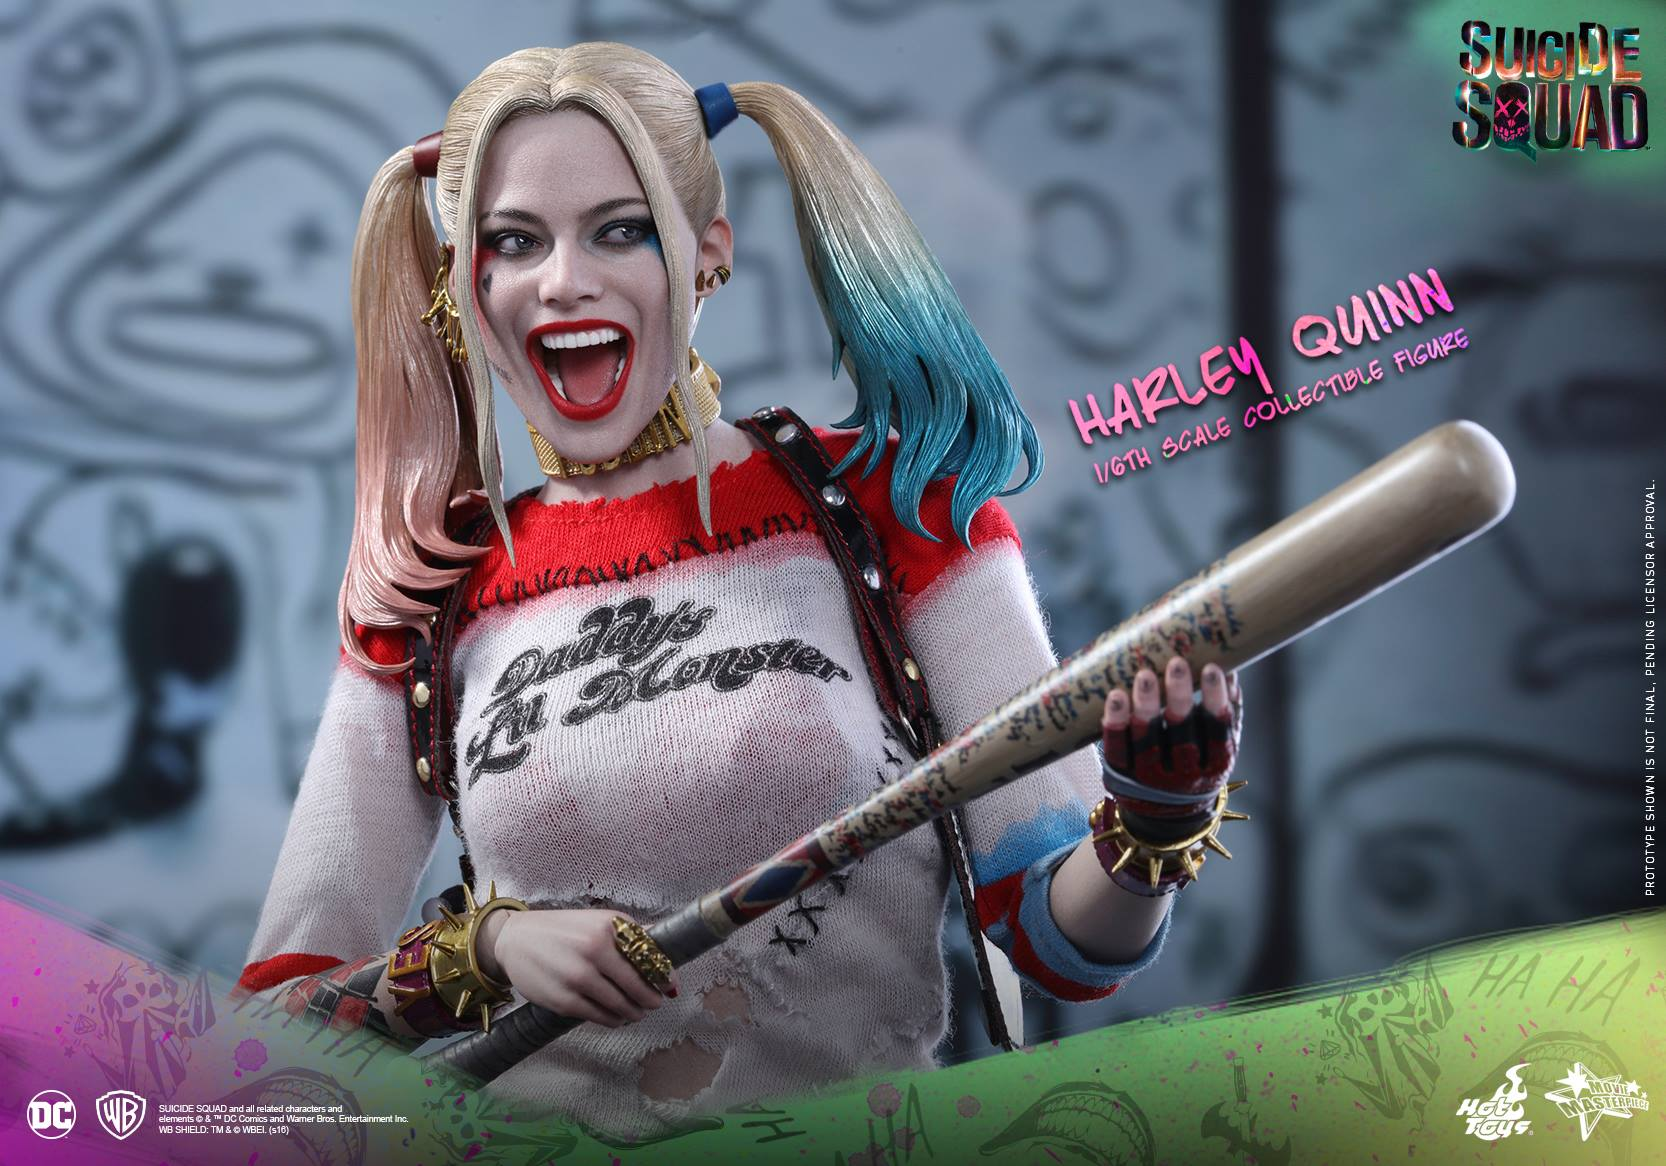 Hot-Toys-Suicide-Squad-Harley-Quinn-14